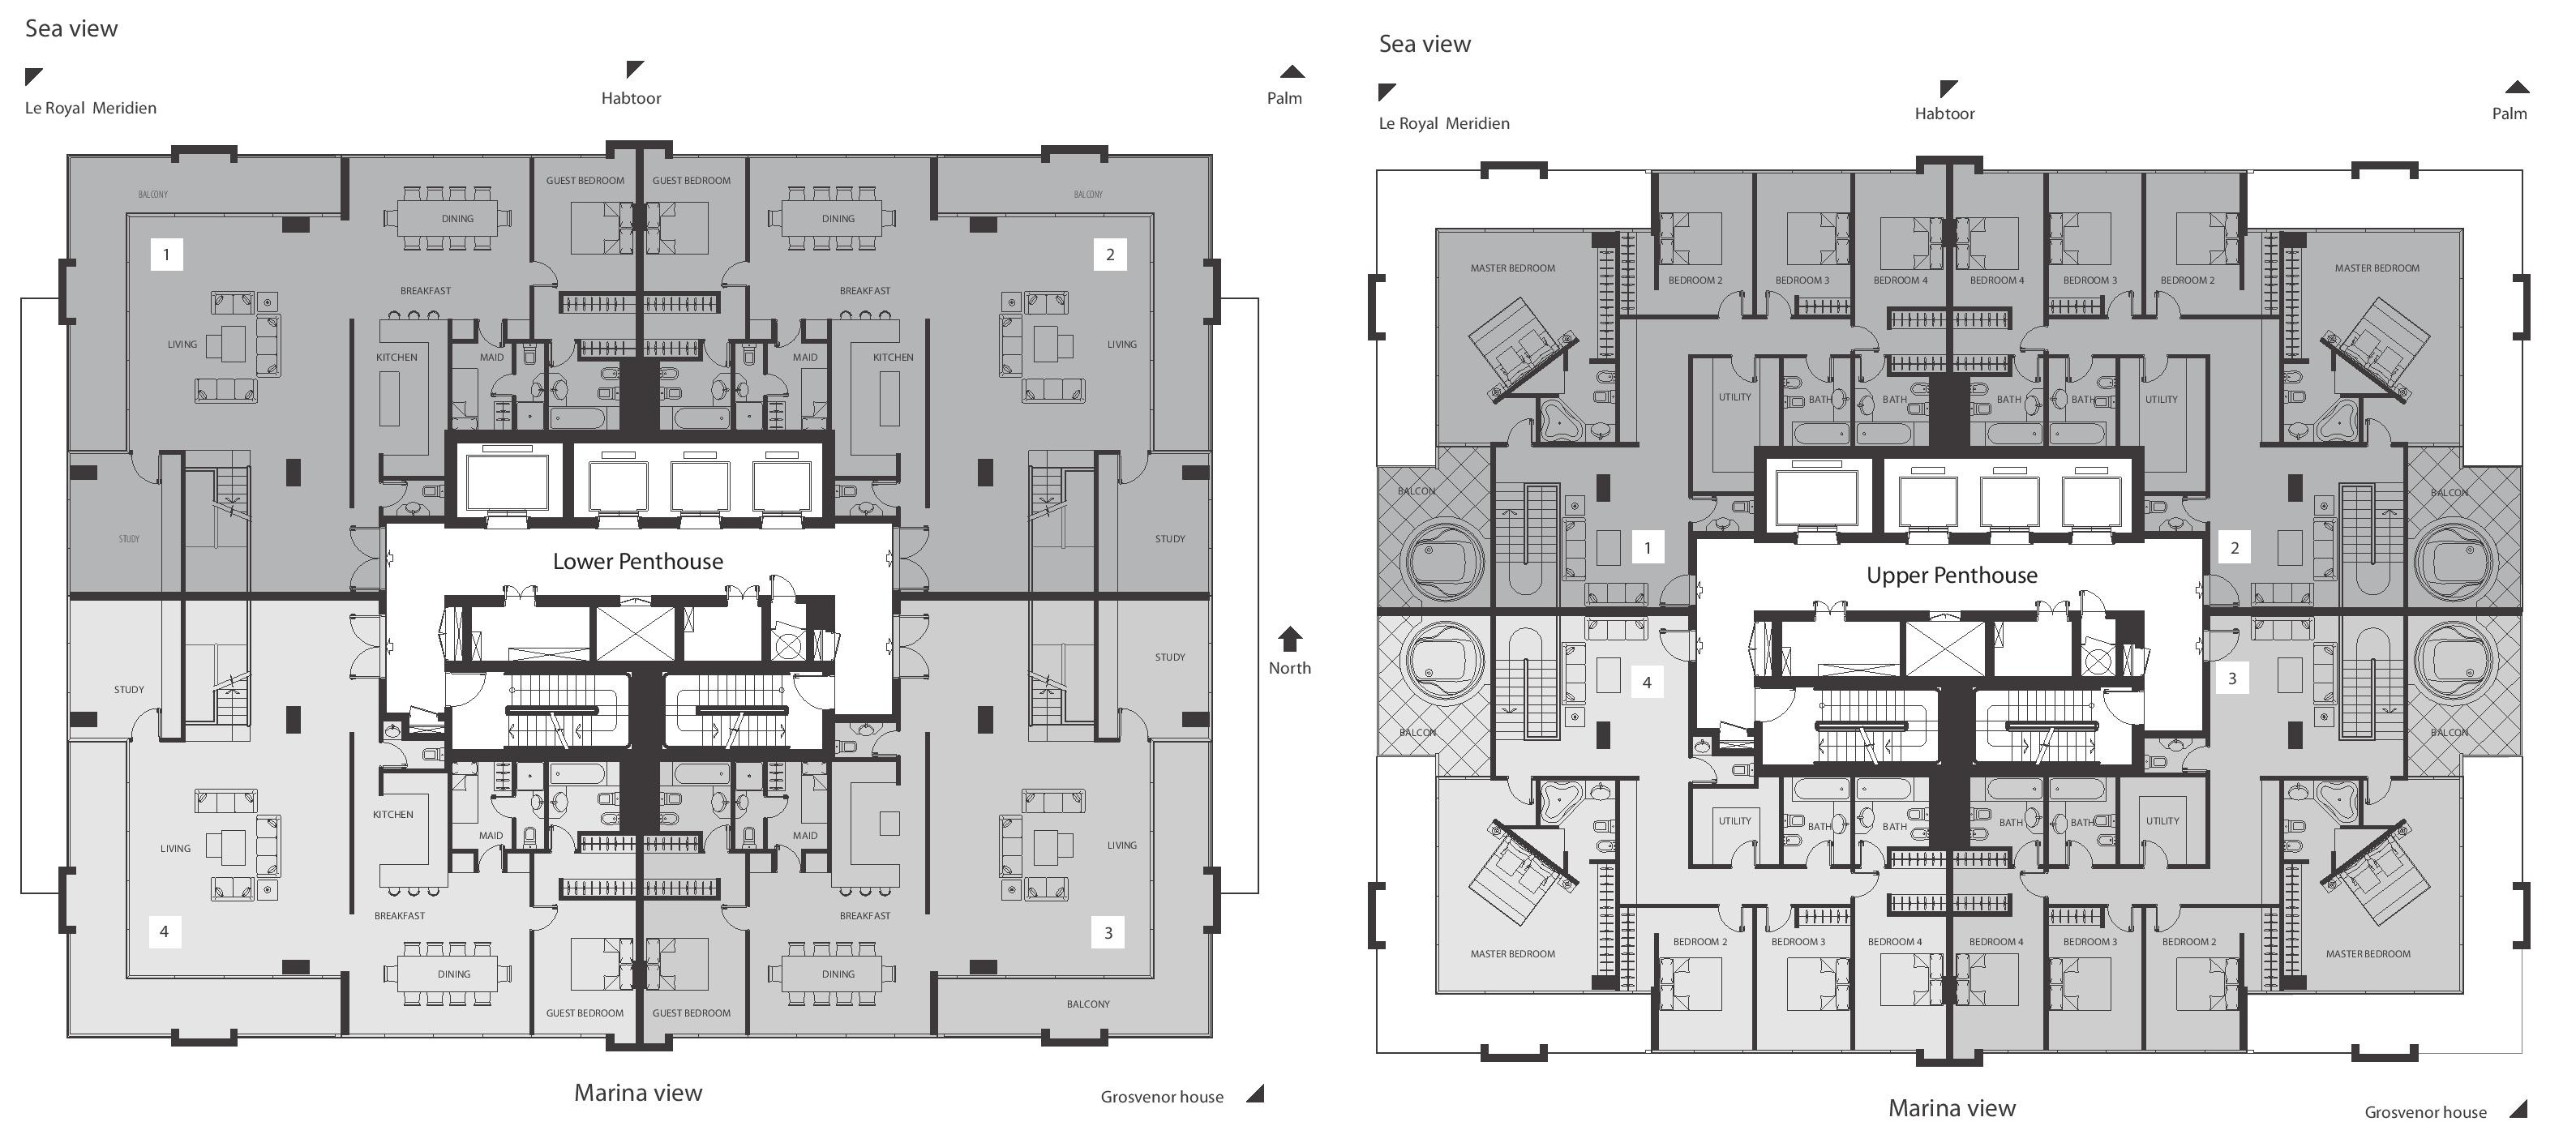 Hong Kong Apartment Floor Plan Botanica Floor Plans Dubai Marina